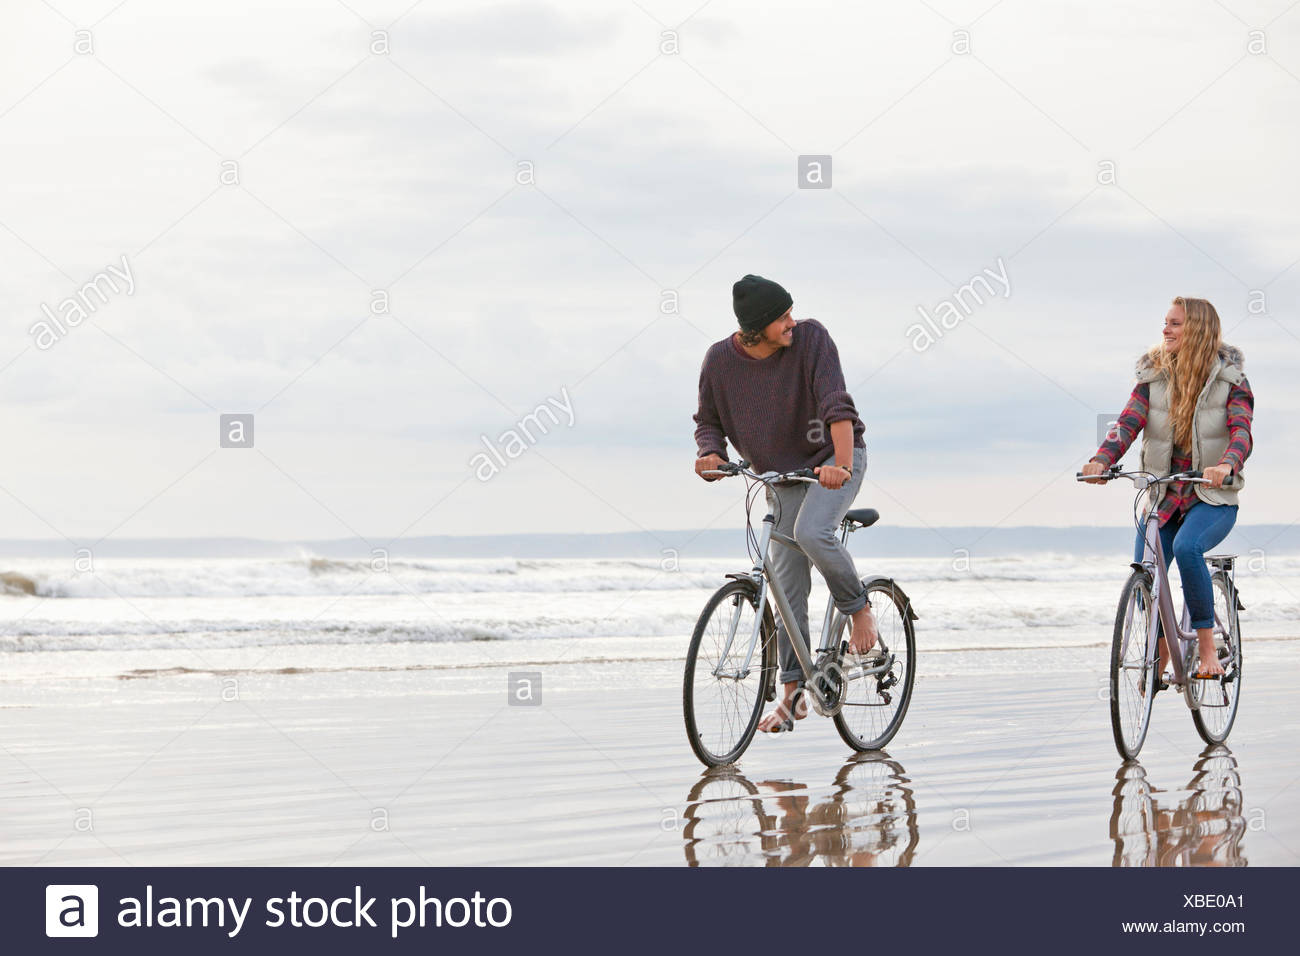 Couple riding bicycles on beach Photo Stock